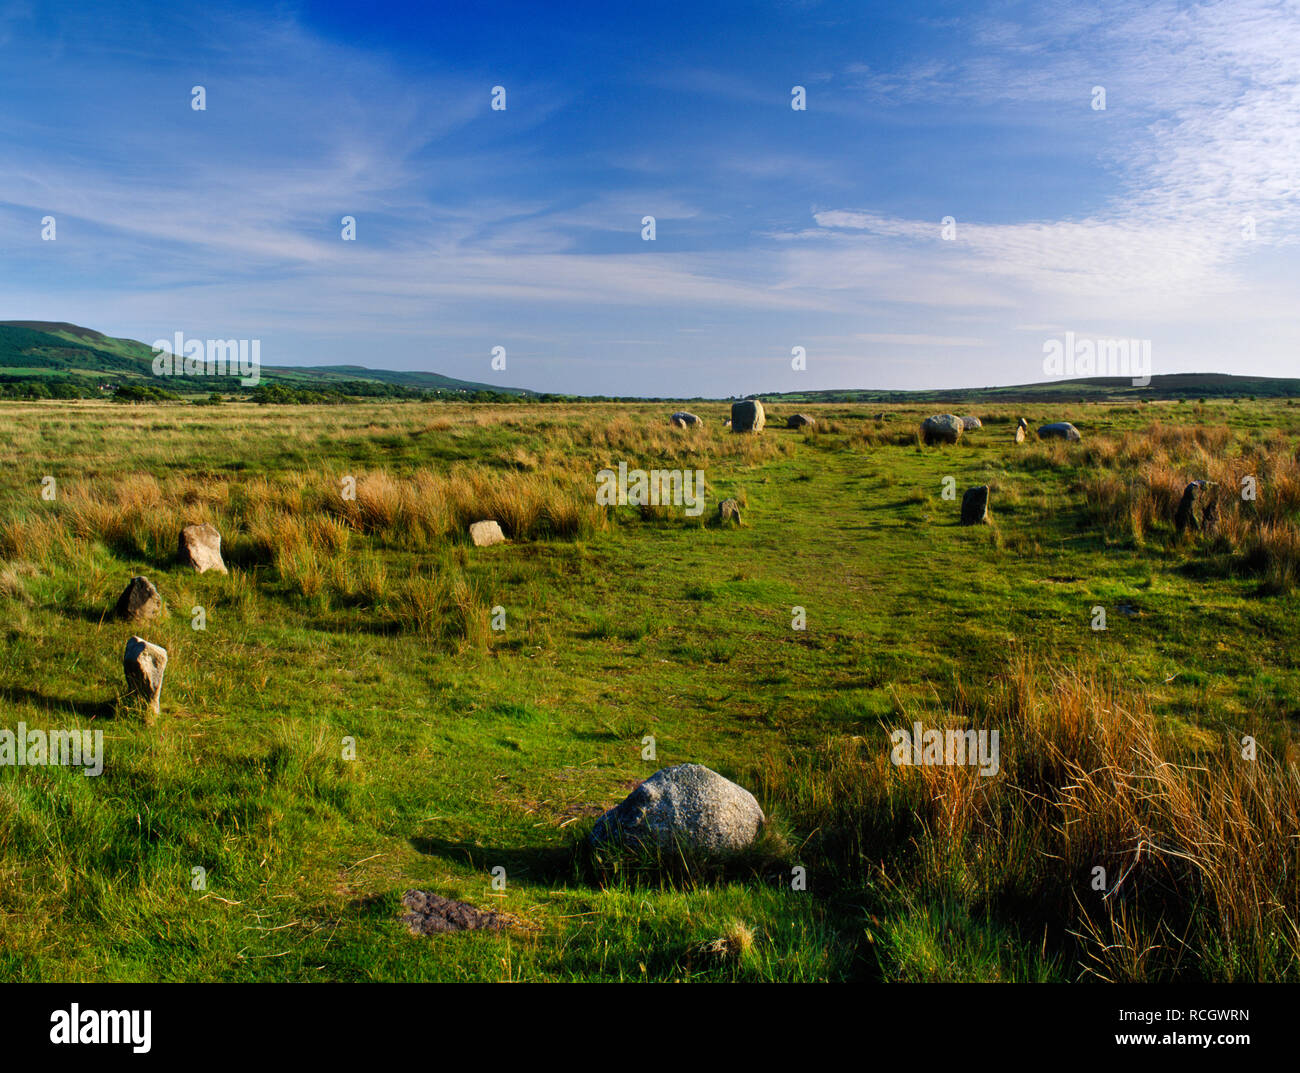 Machrie Moor Bronze Age stone circles, Arran, Scotland, UK: Looking S over the small stones of Circle XI to the boulders & pillars of Circle I. Stock Photo